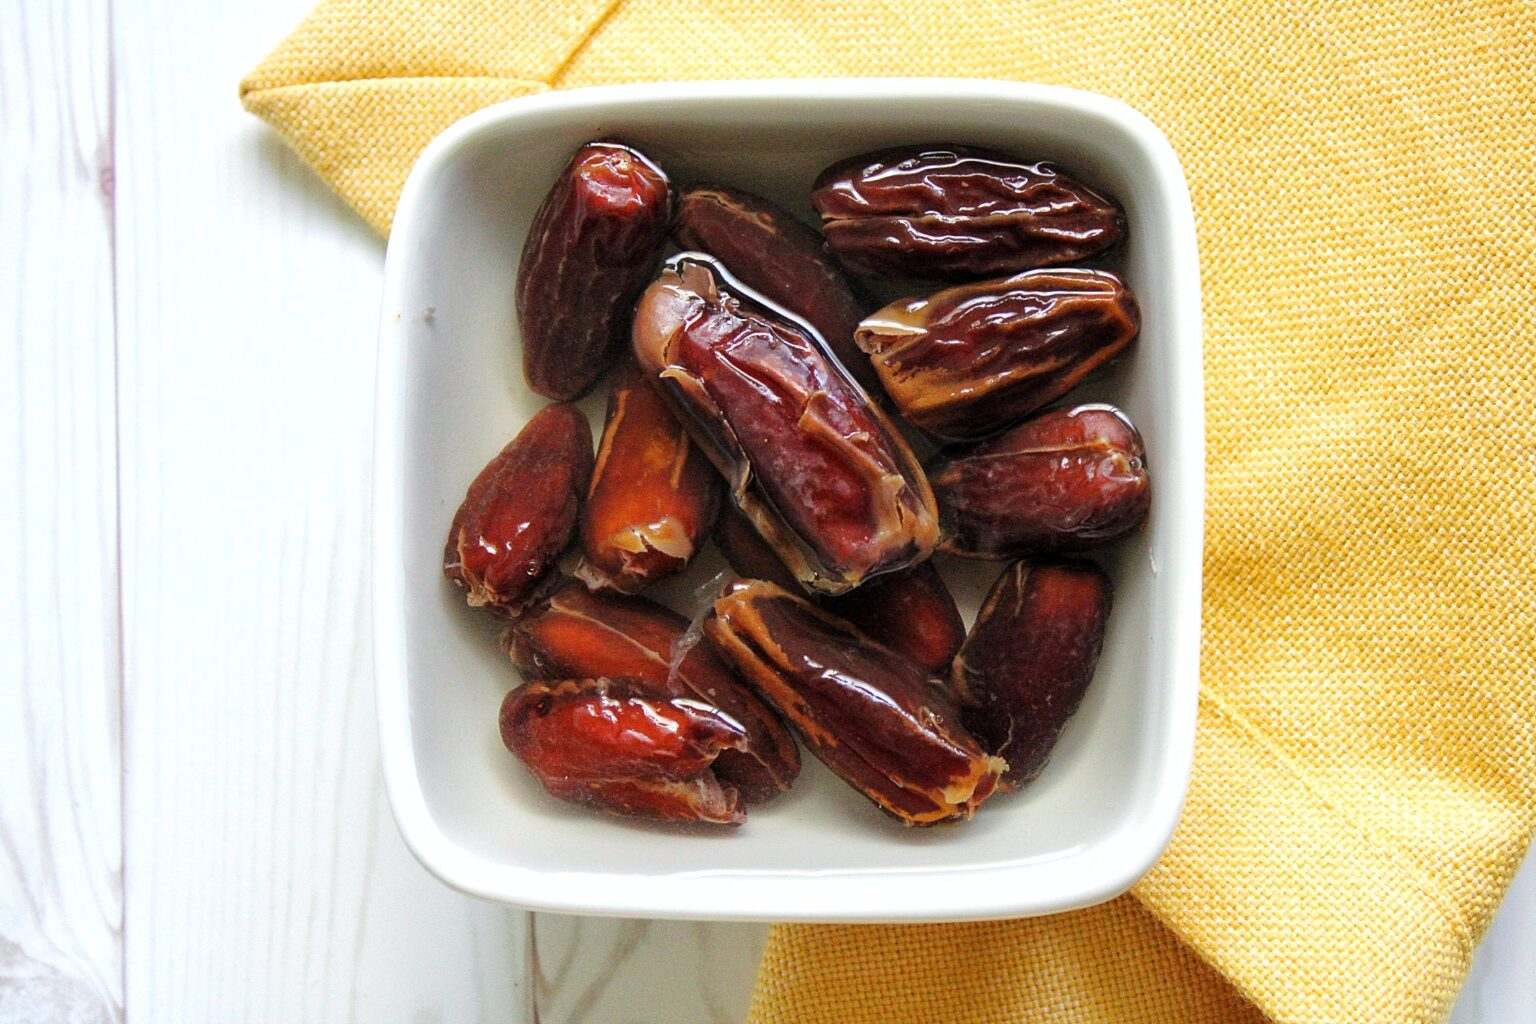 Dates soaking in water in a small dish